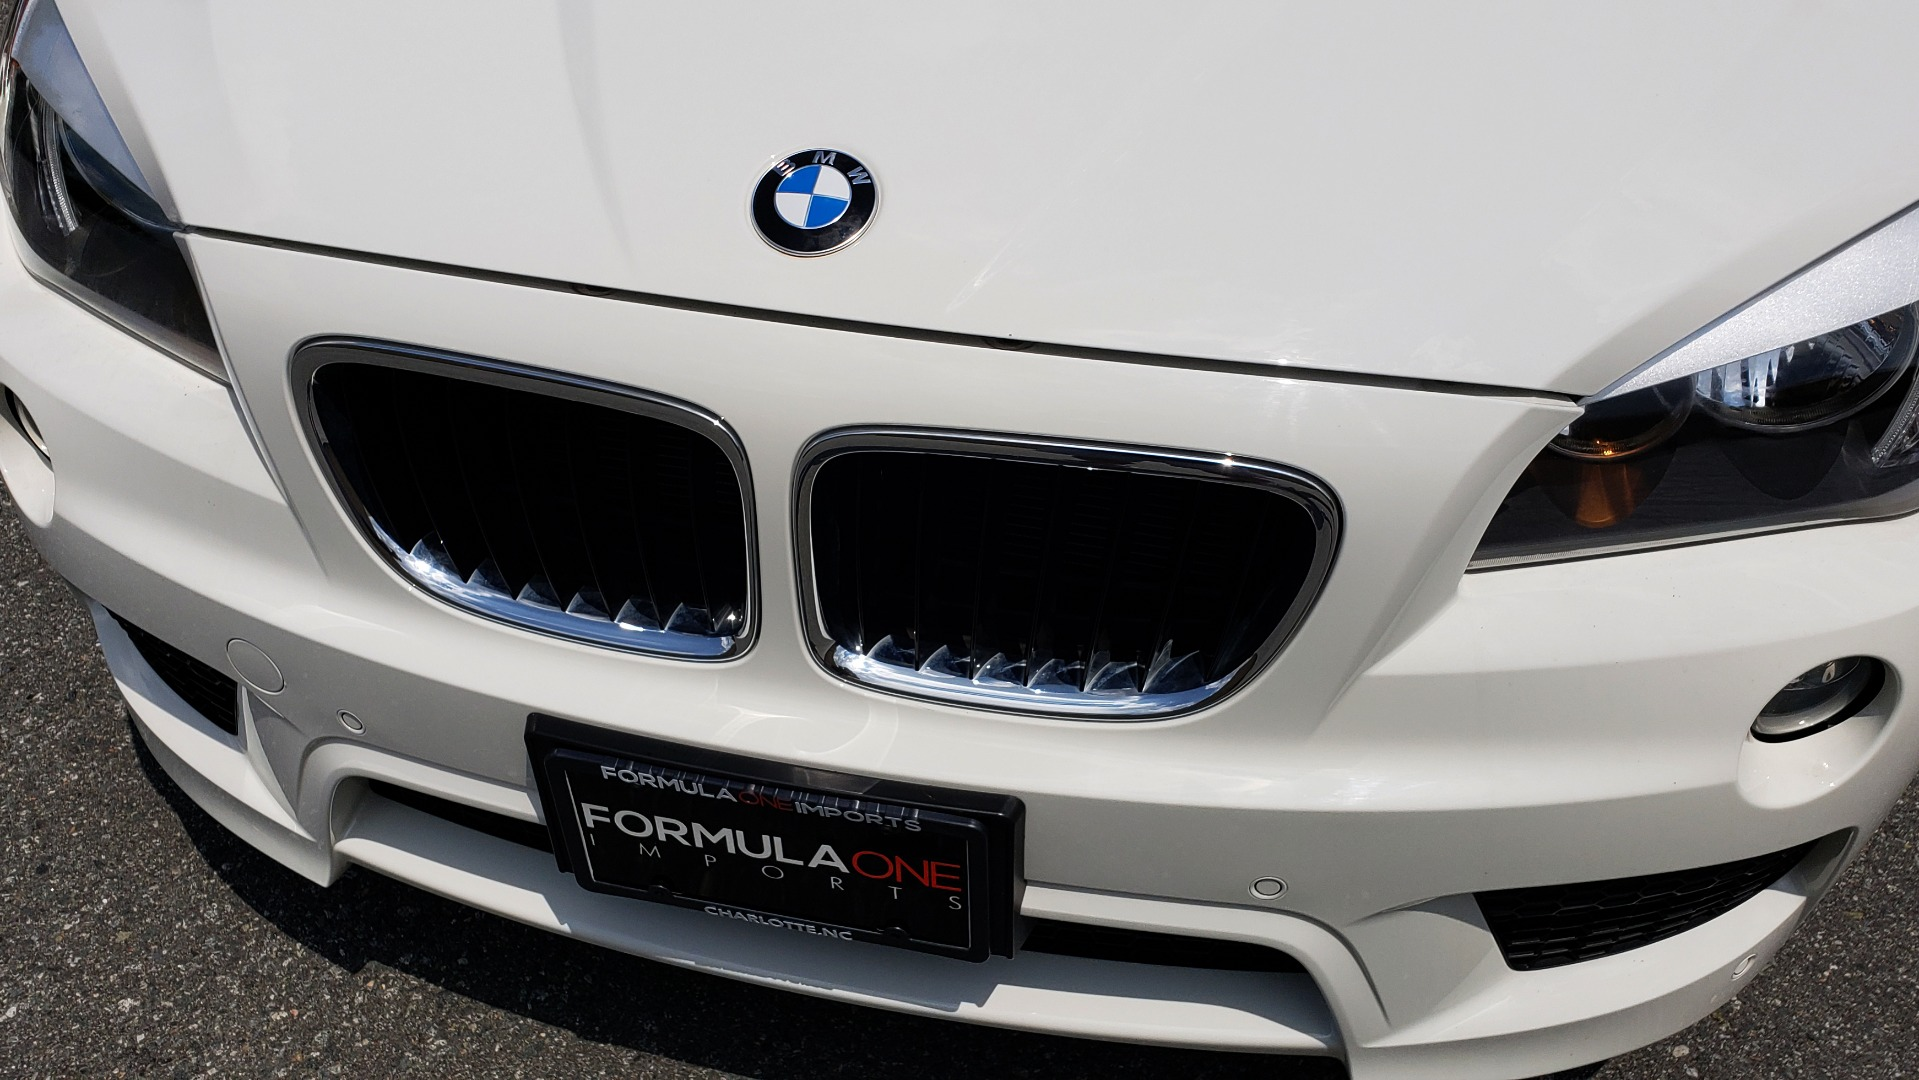 Used 2015 BMW X1 SDRIVE28I M-SPORT ULTIMATE / NAV / SUNROOF / REARVIEW for sale Sold at Formula Imports in Charlotte NC 28227 25